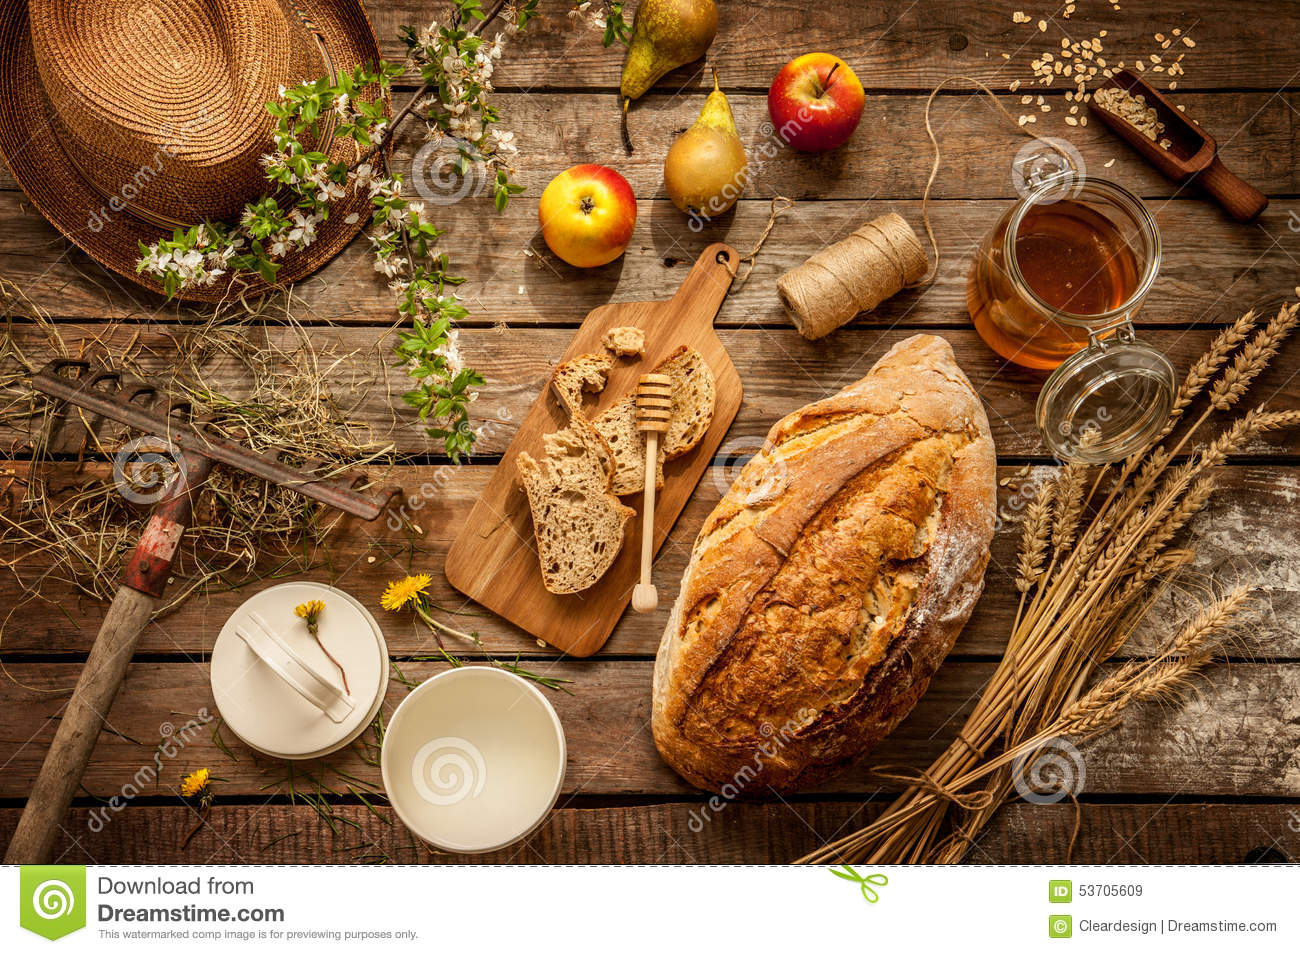 Natural local food products on vintage wooden table